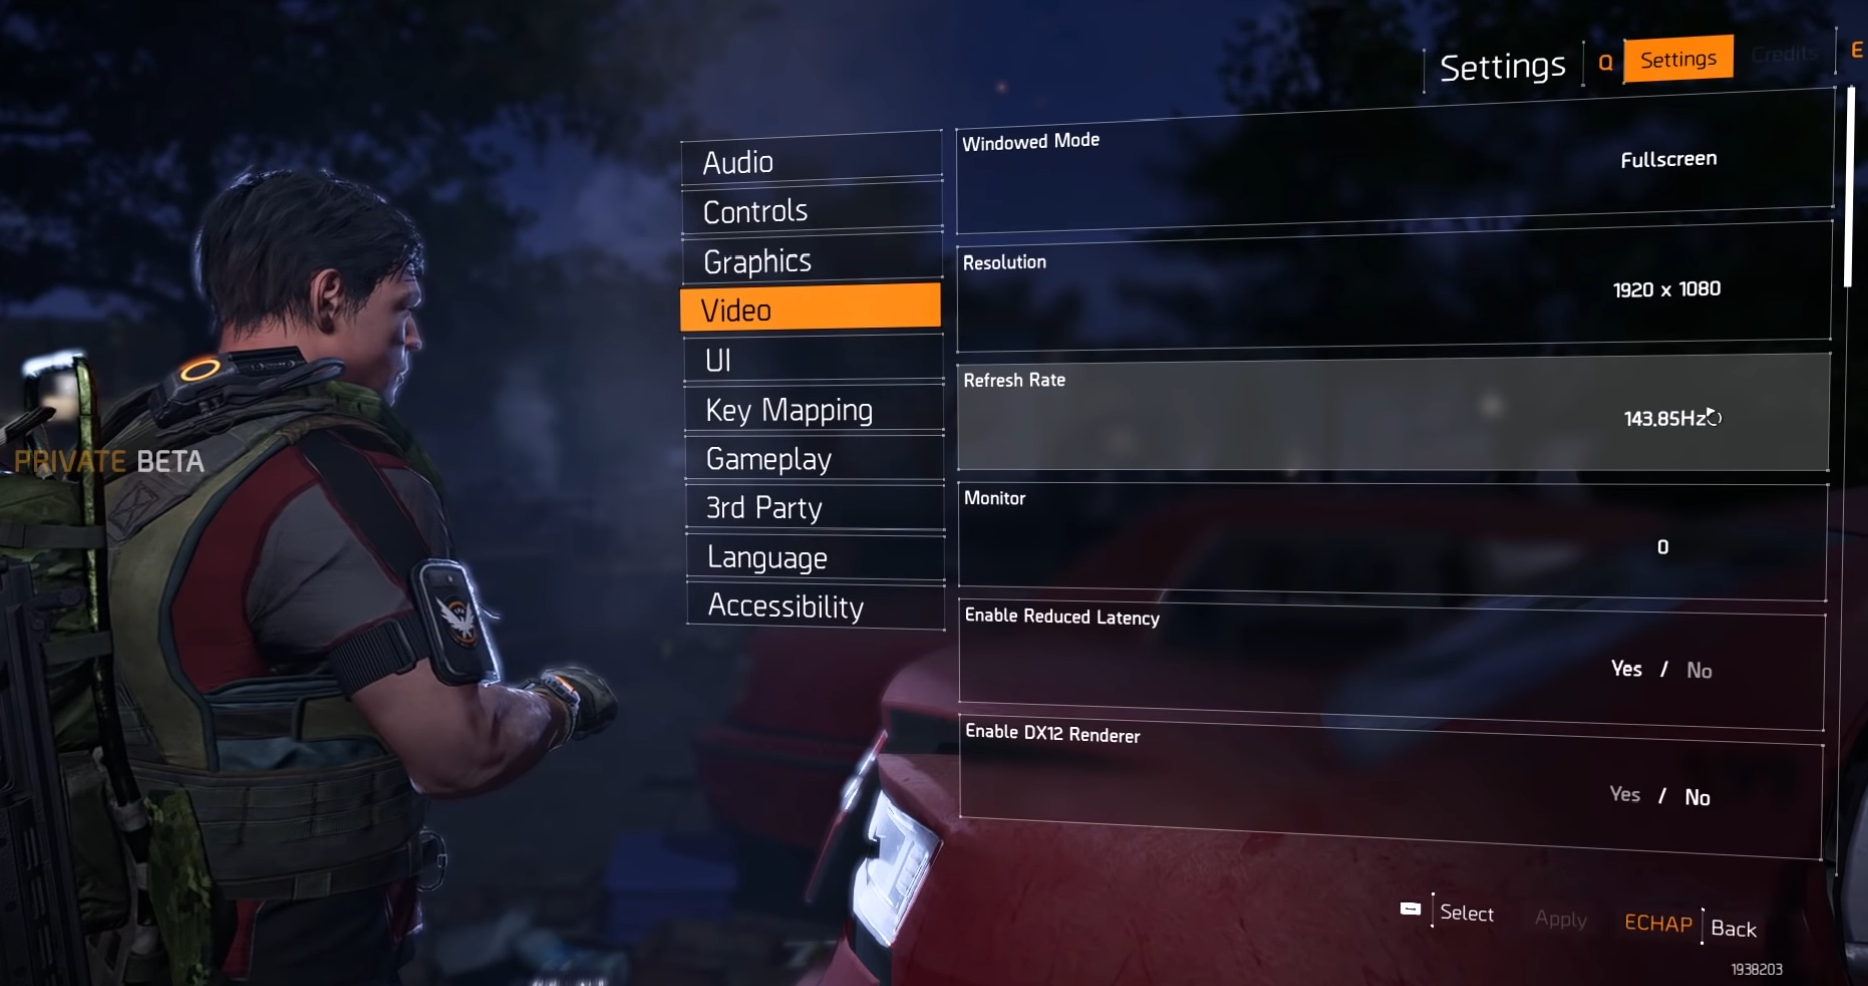 Best Settings for The Division 2